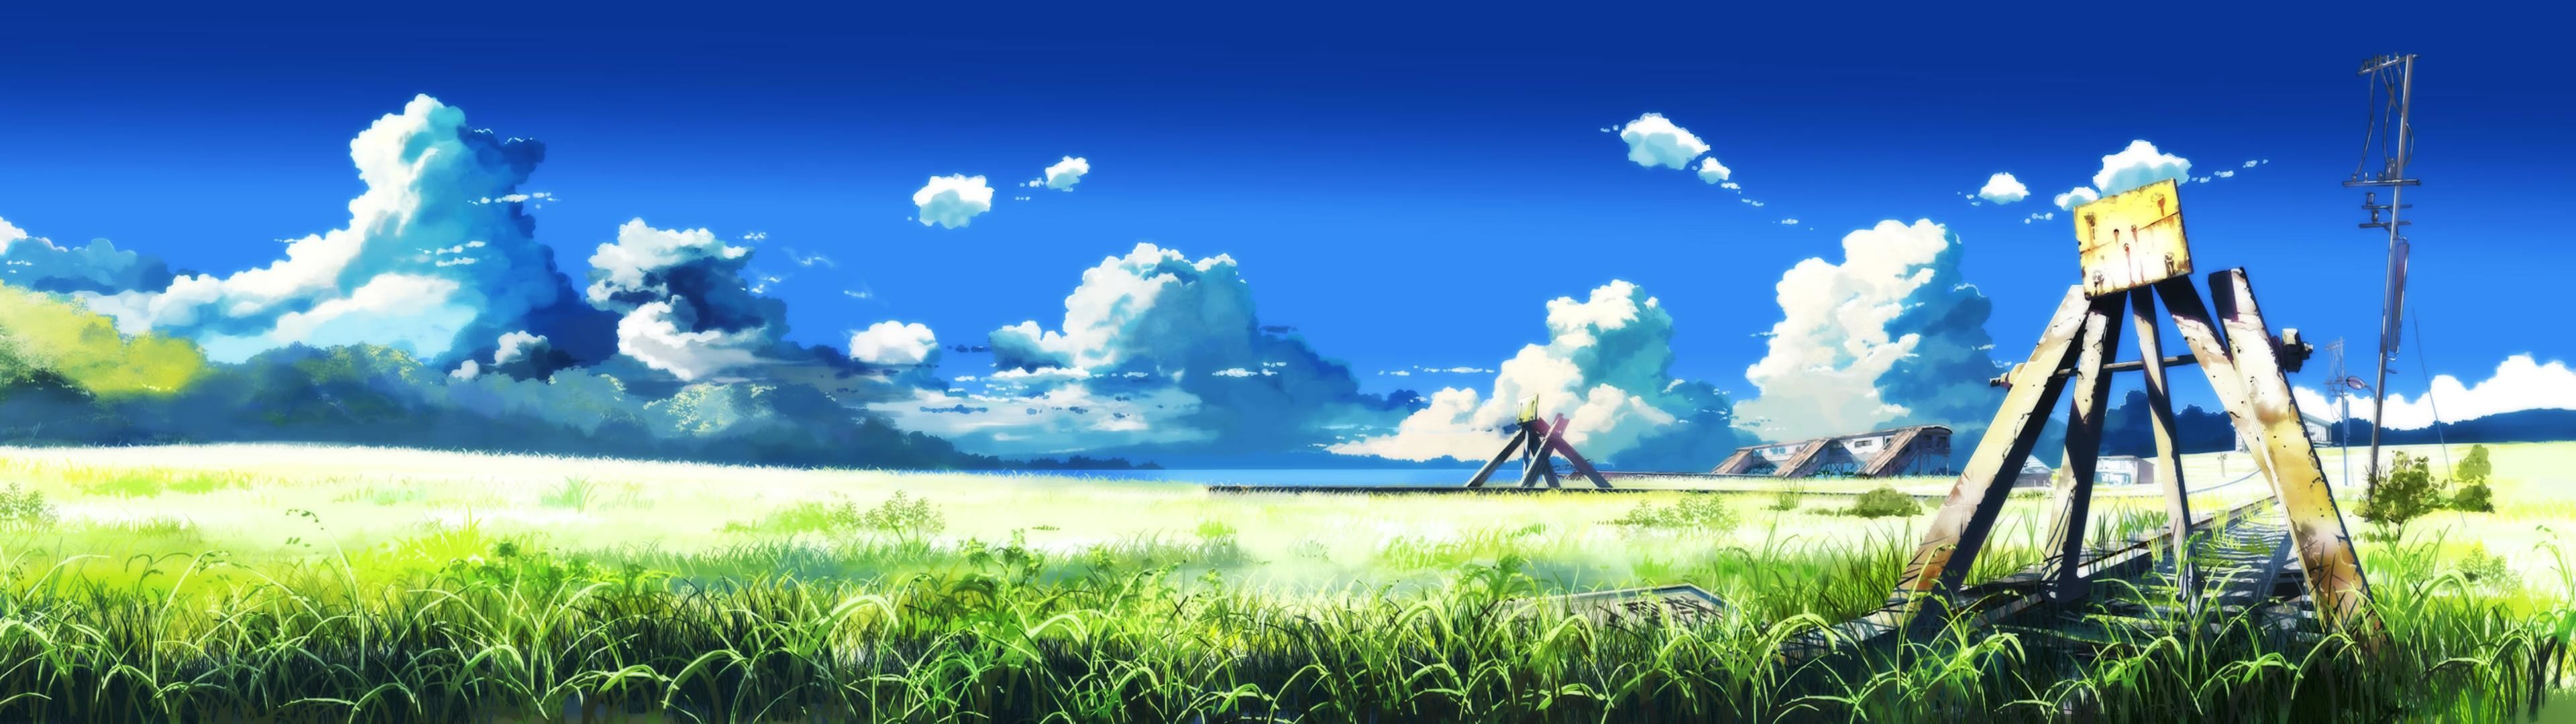 wallpaper.wiki-Best-Anime-Dual-Monitor-HD-Pictures-